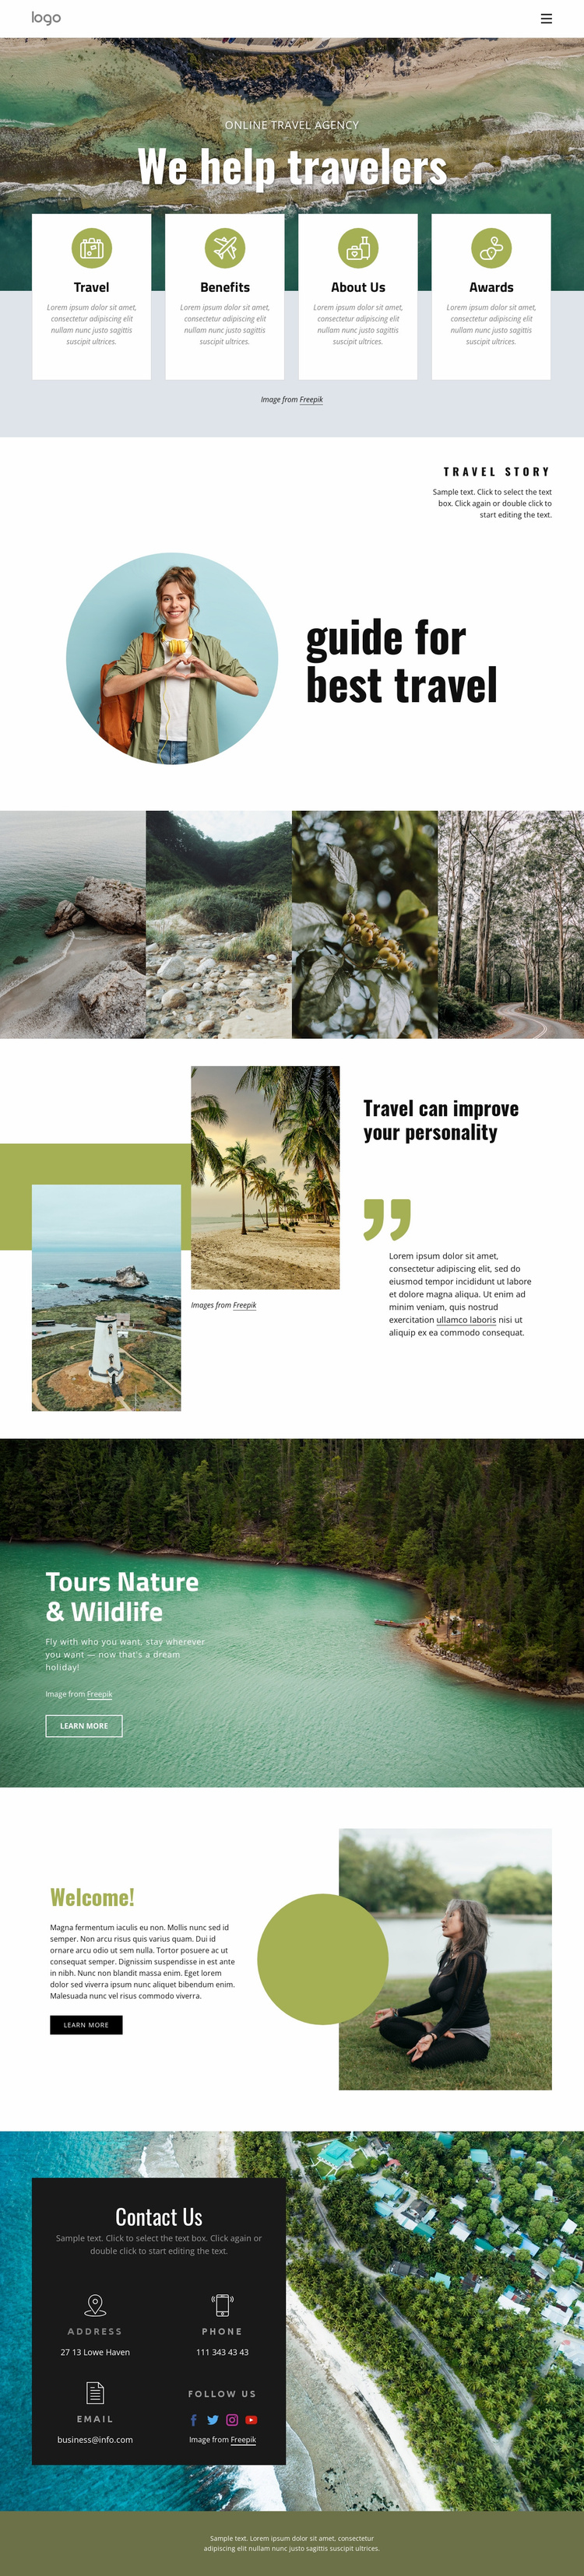 We help manage your trip Website Template